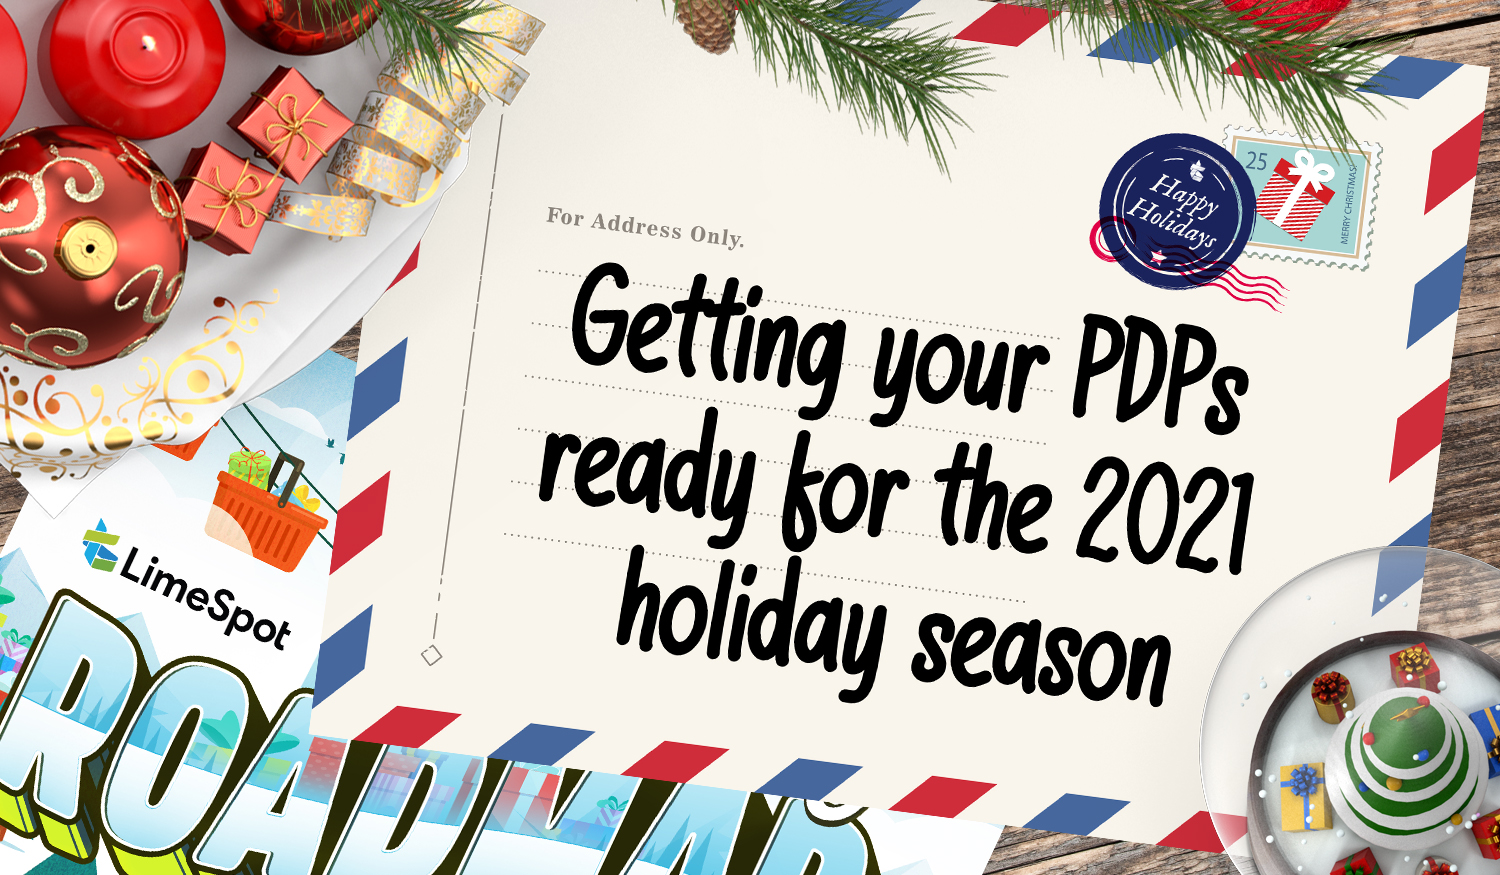 Getting your PDPs ready for the 2021 holiday season 1500x875px